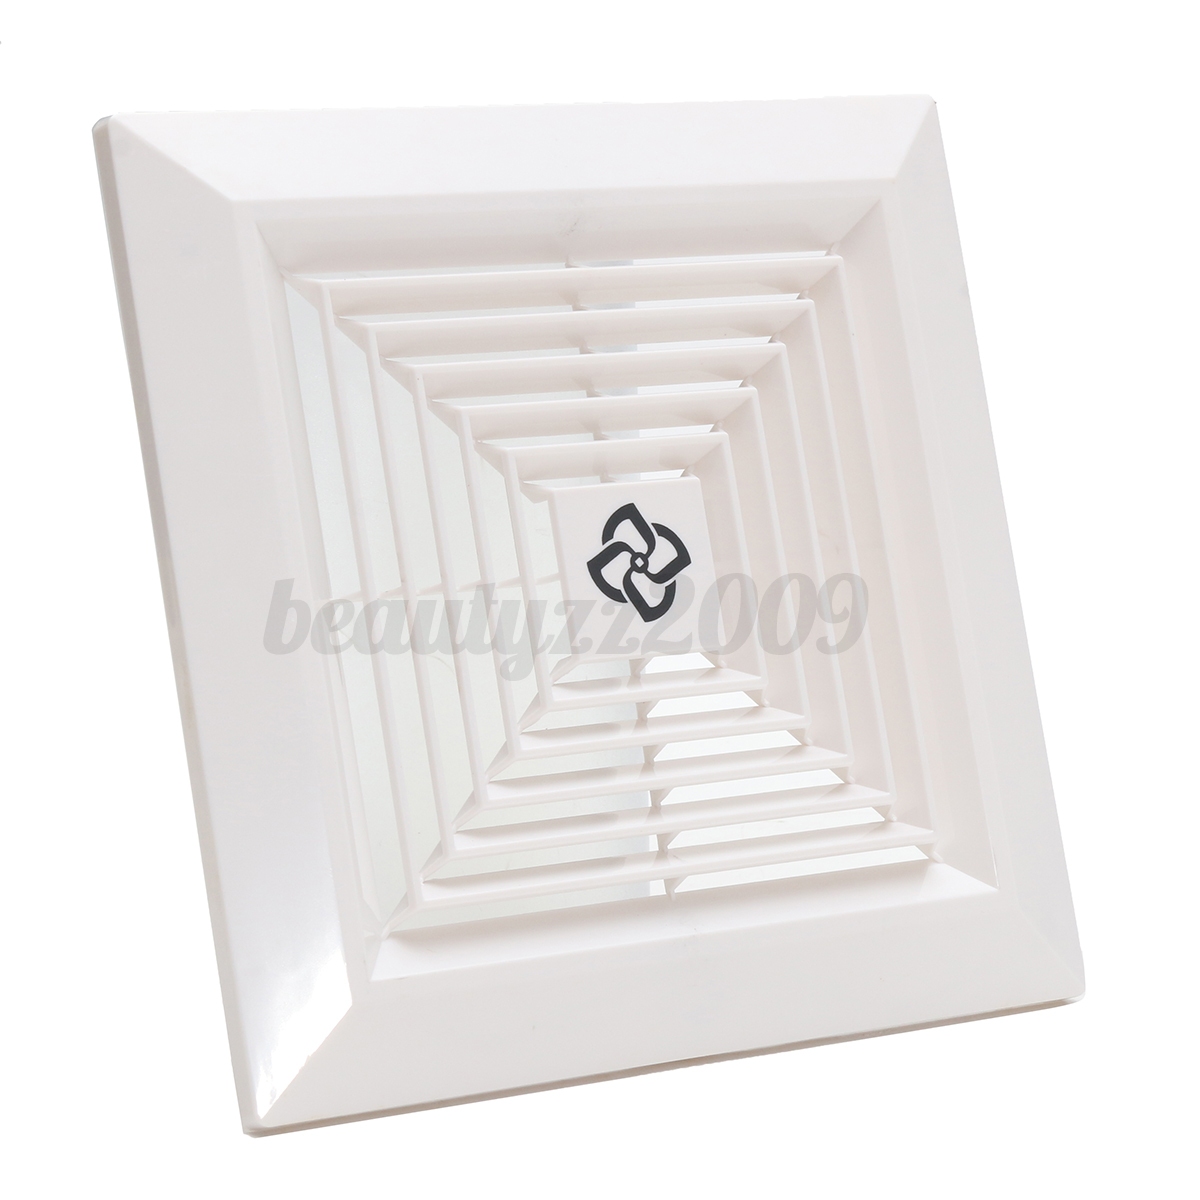 Replacement plastic grille ceiling fan ventilation cover for 9 bathroom fan cover